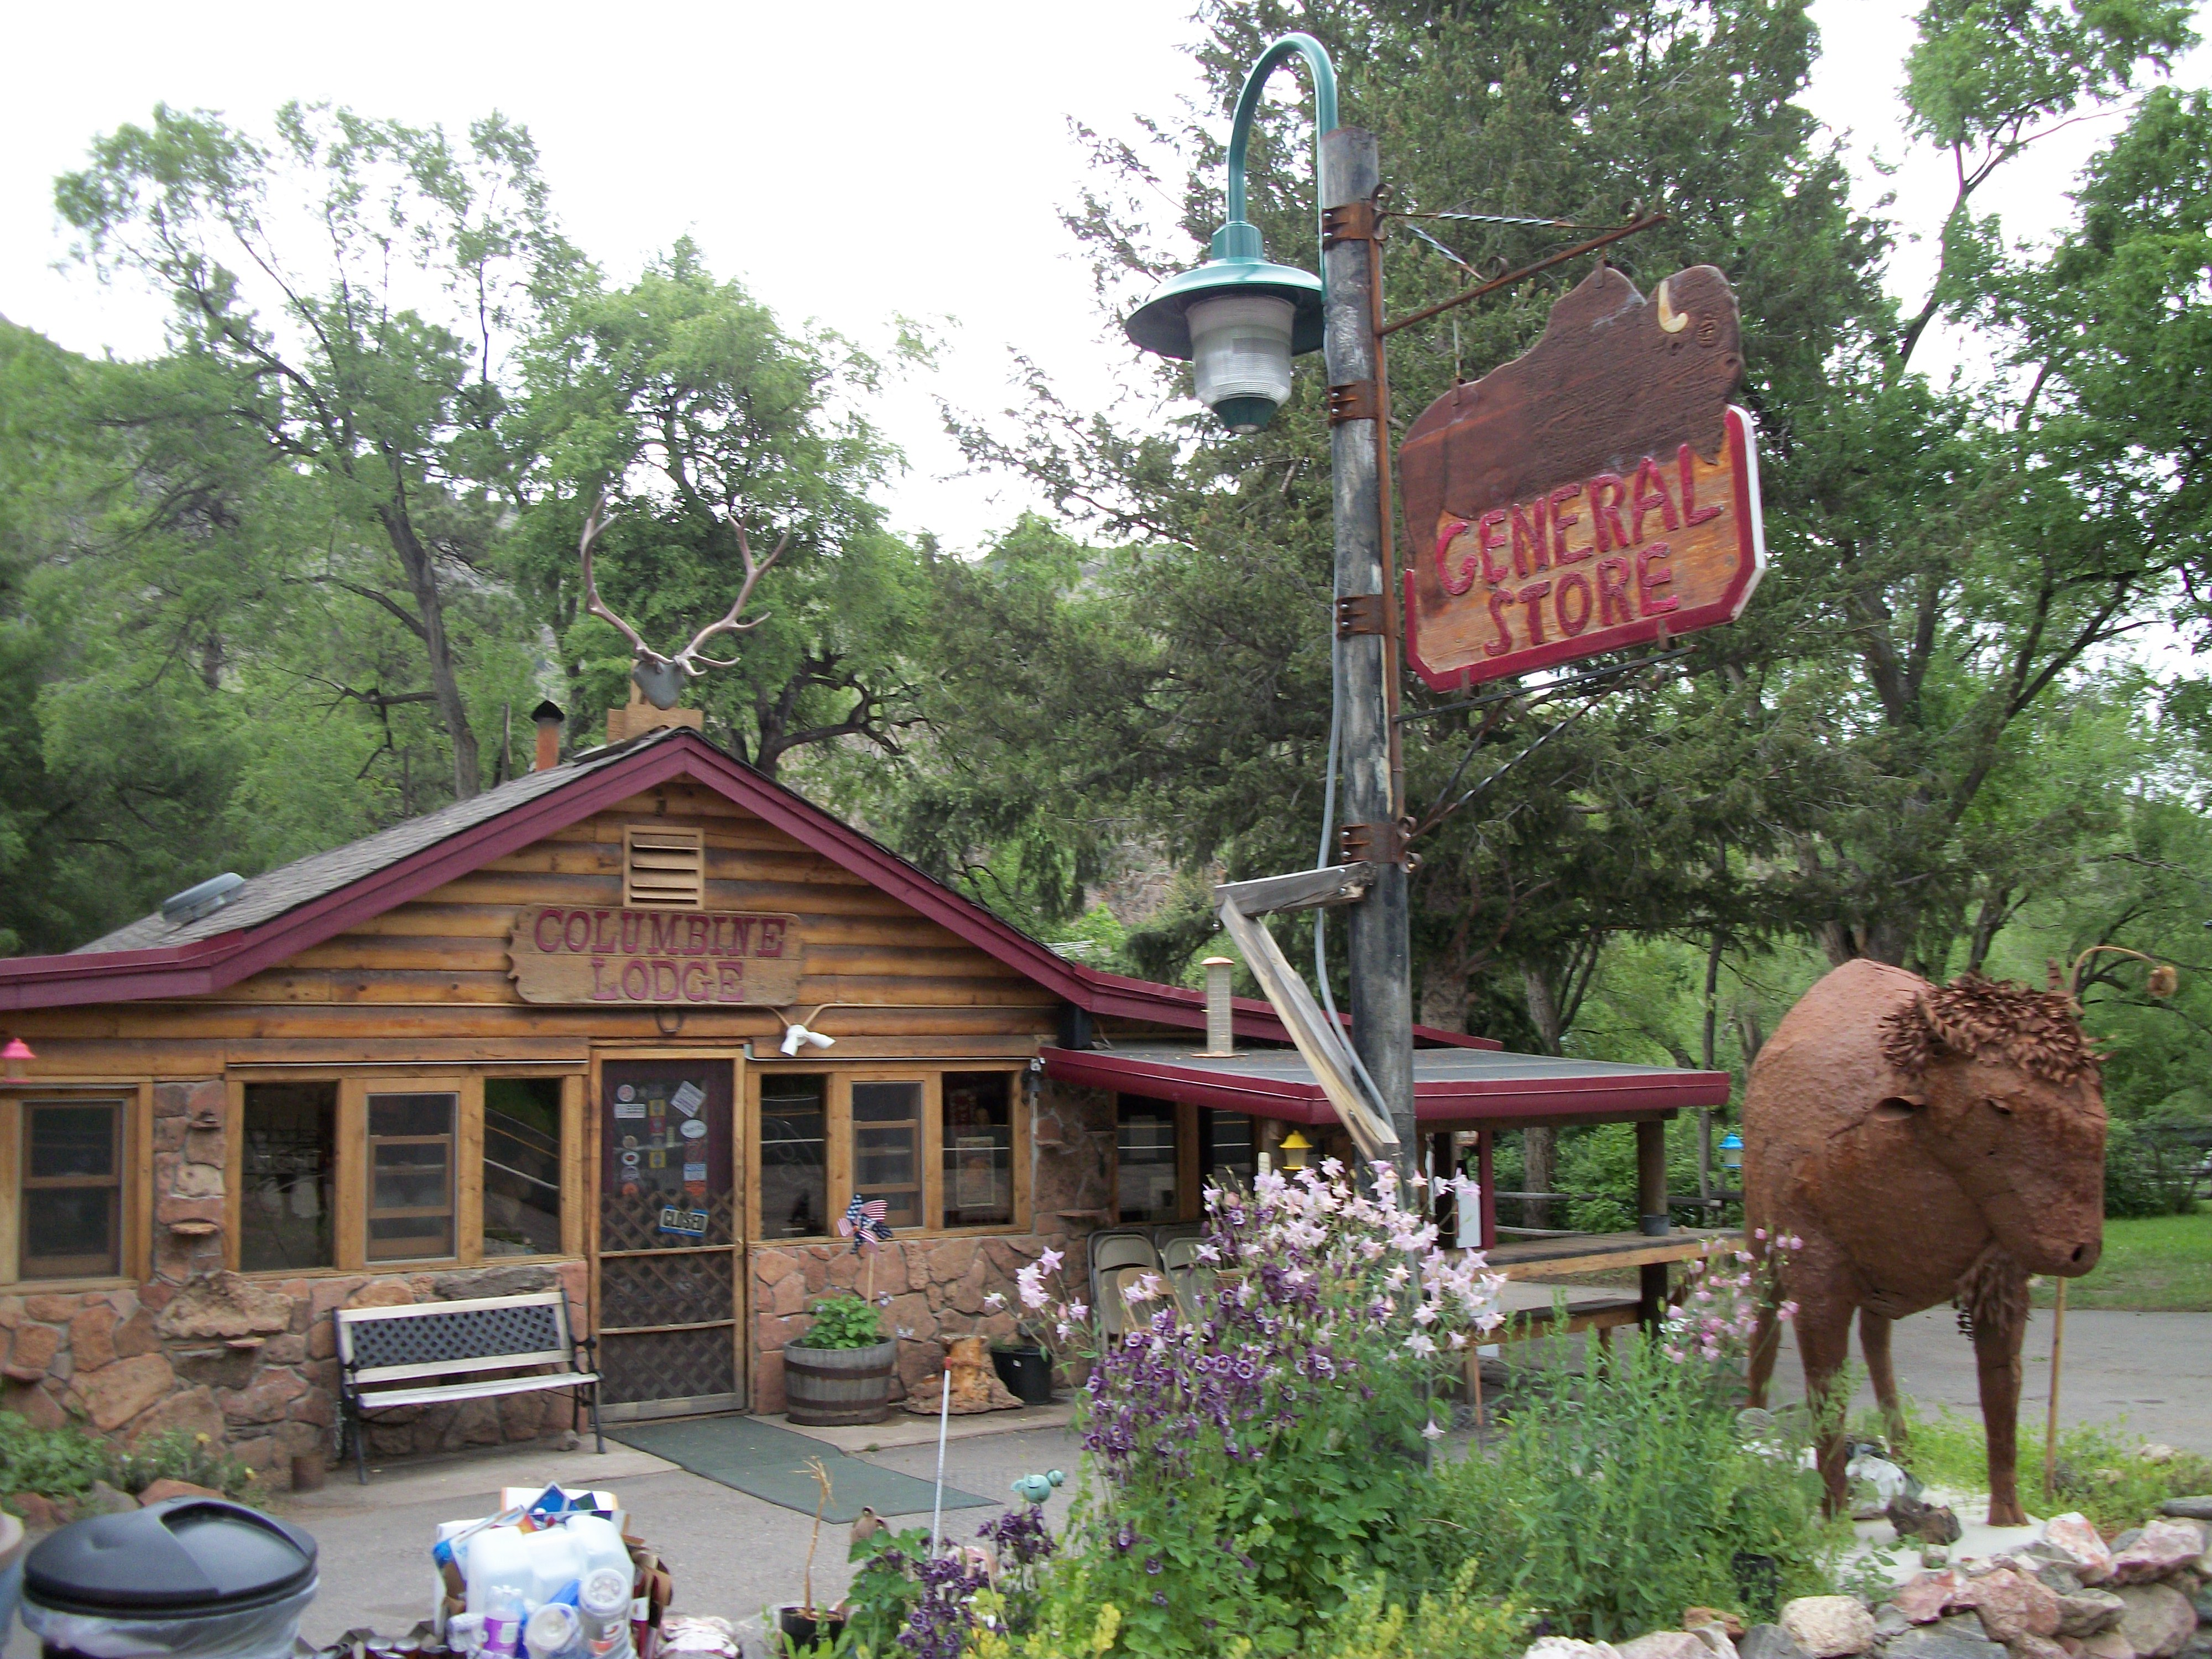 General Store, Pudre Canyon, CO